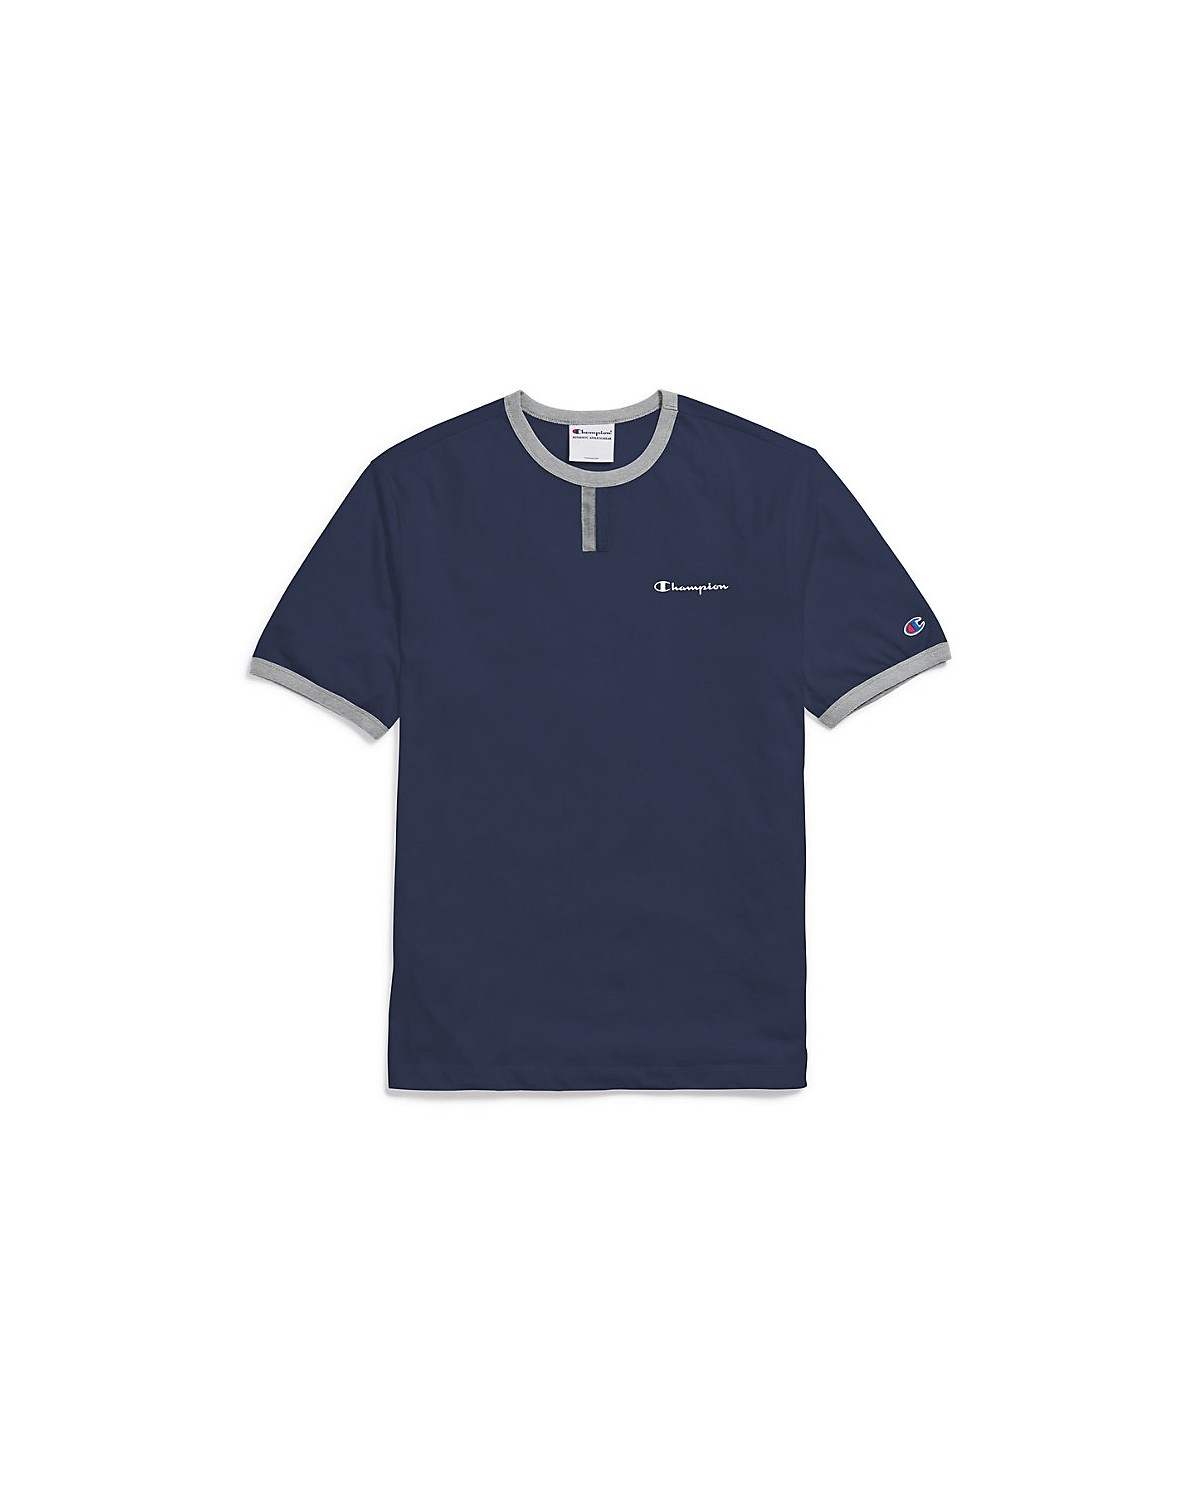 T5050 550031 Champion Imperial Indigo/Oxford Grey